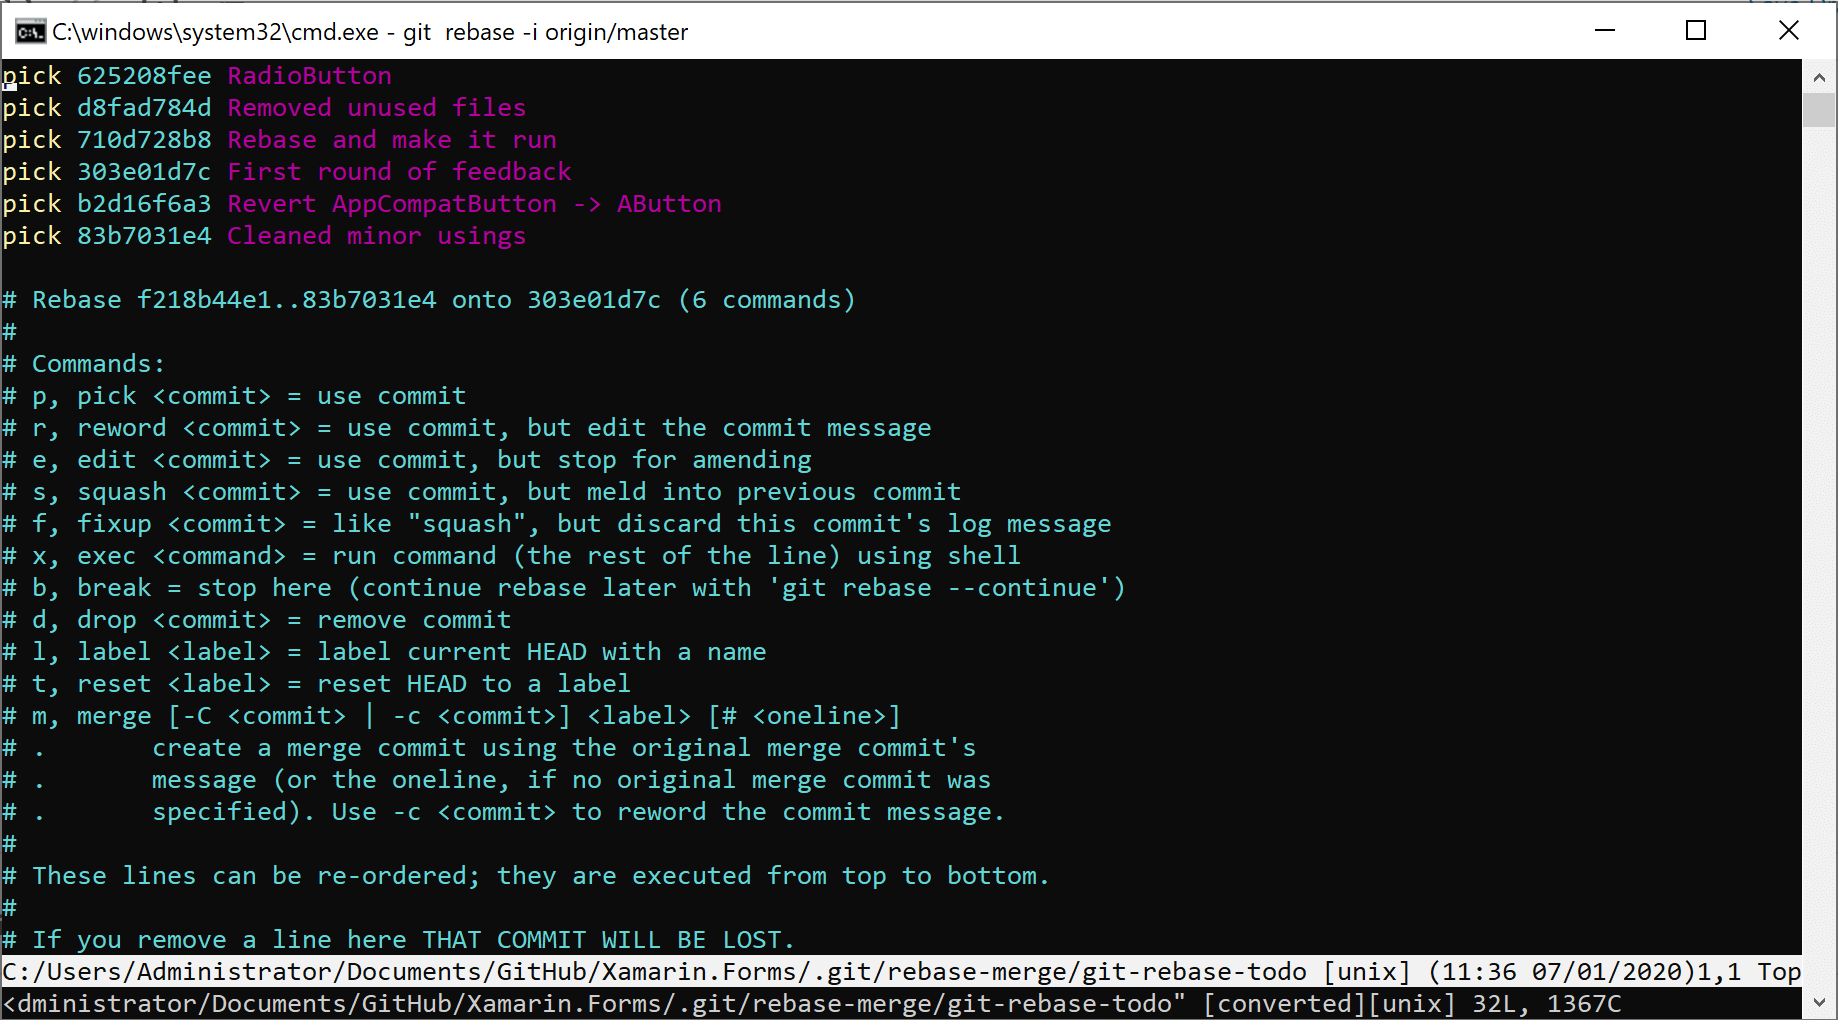 Vim editor showing the commits we want to git rebase